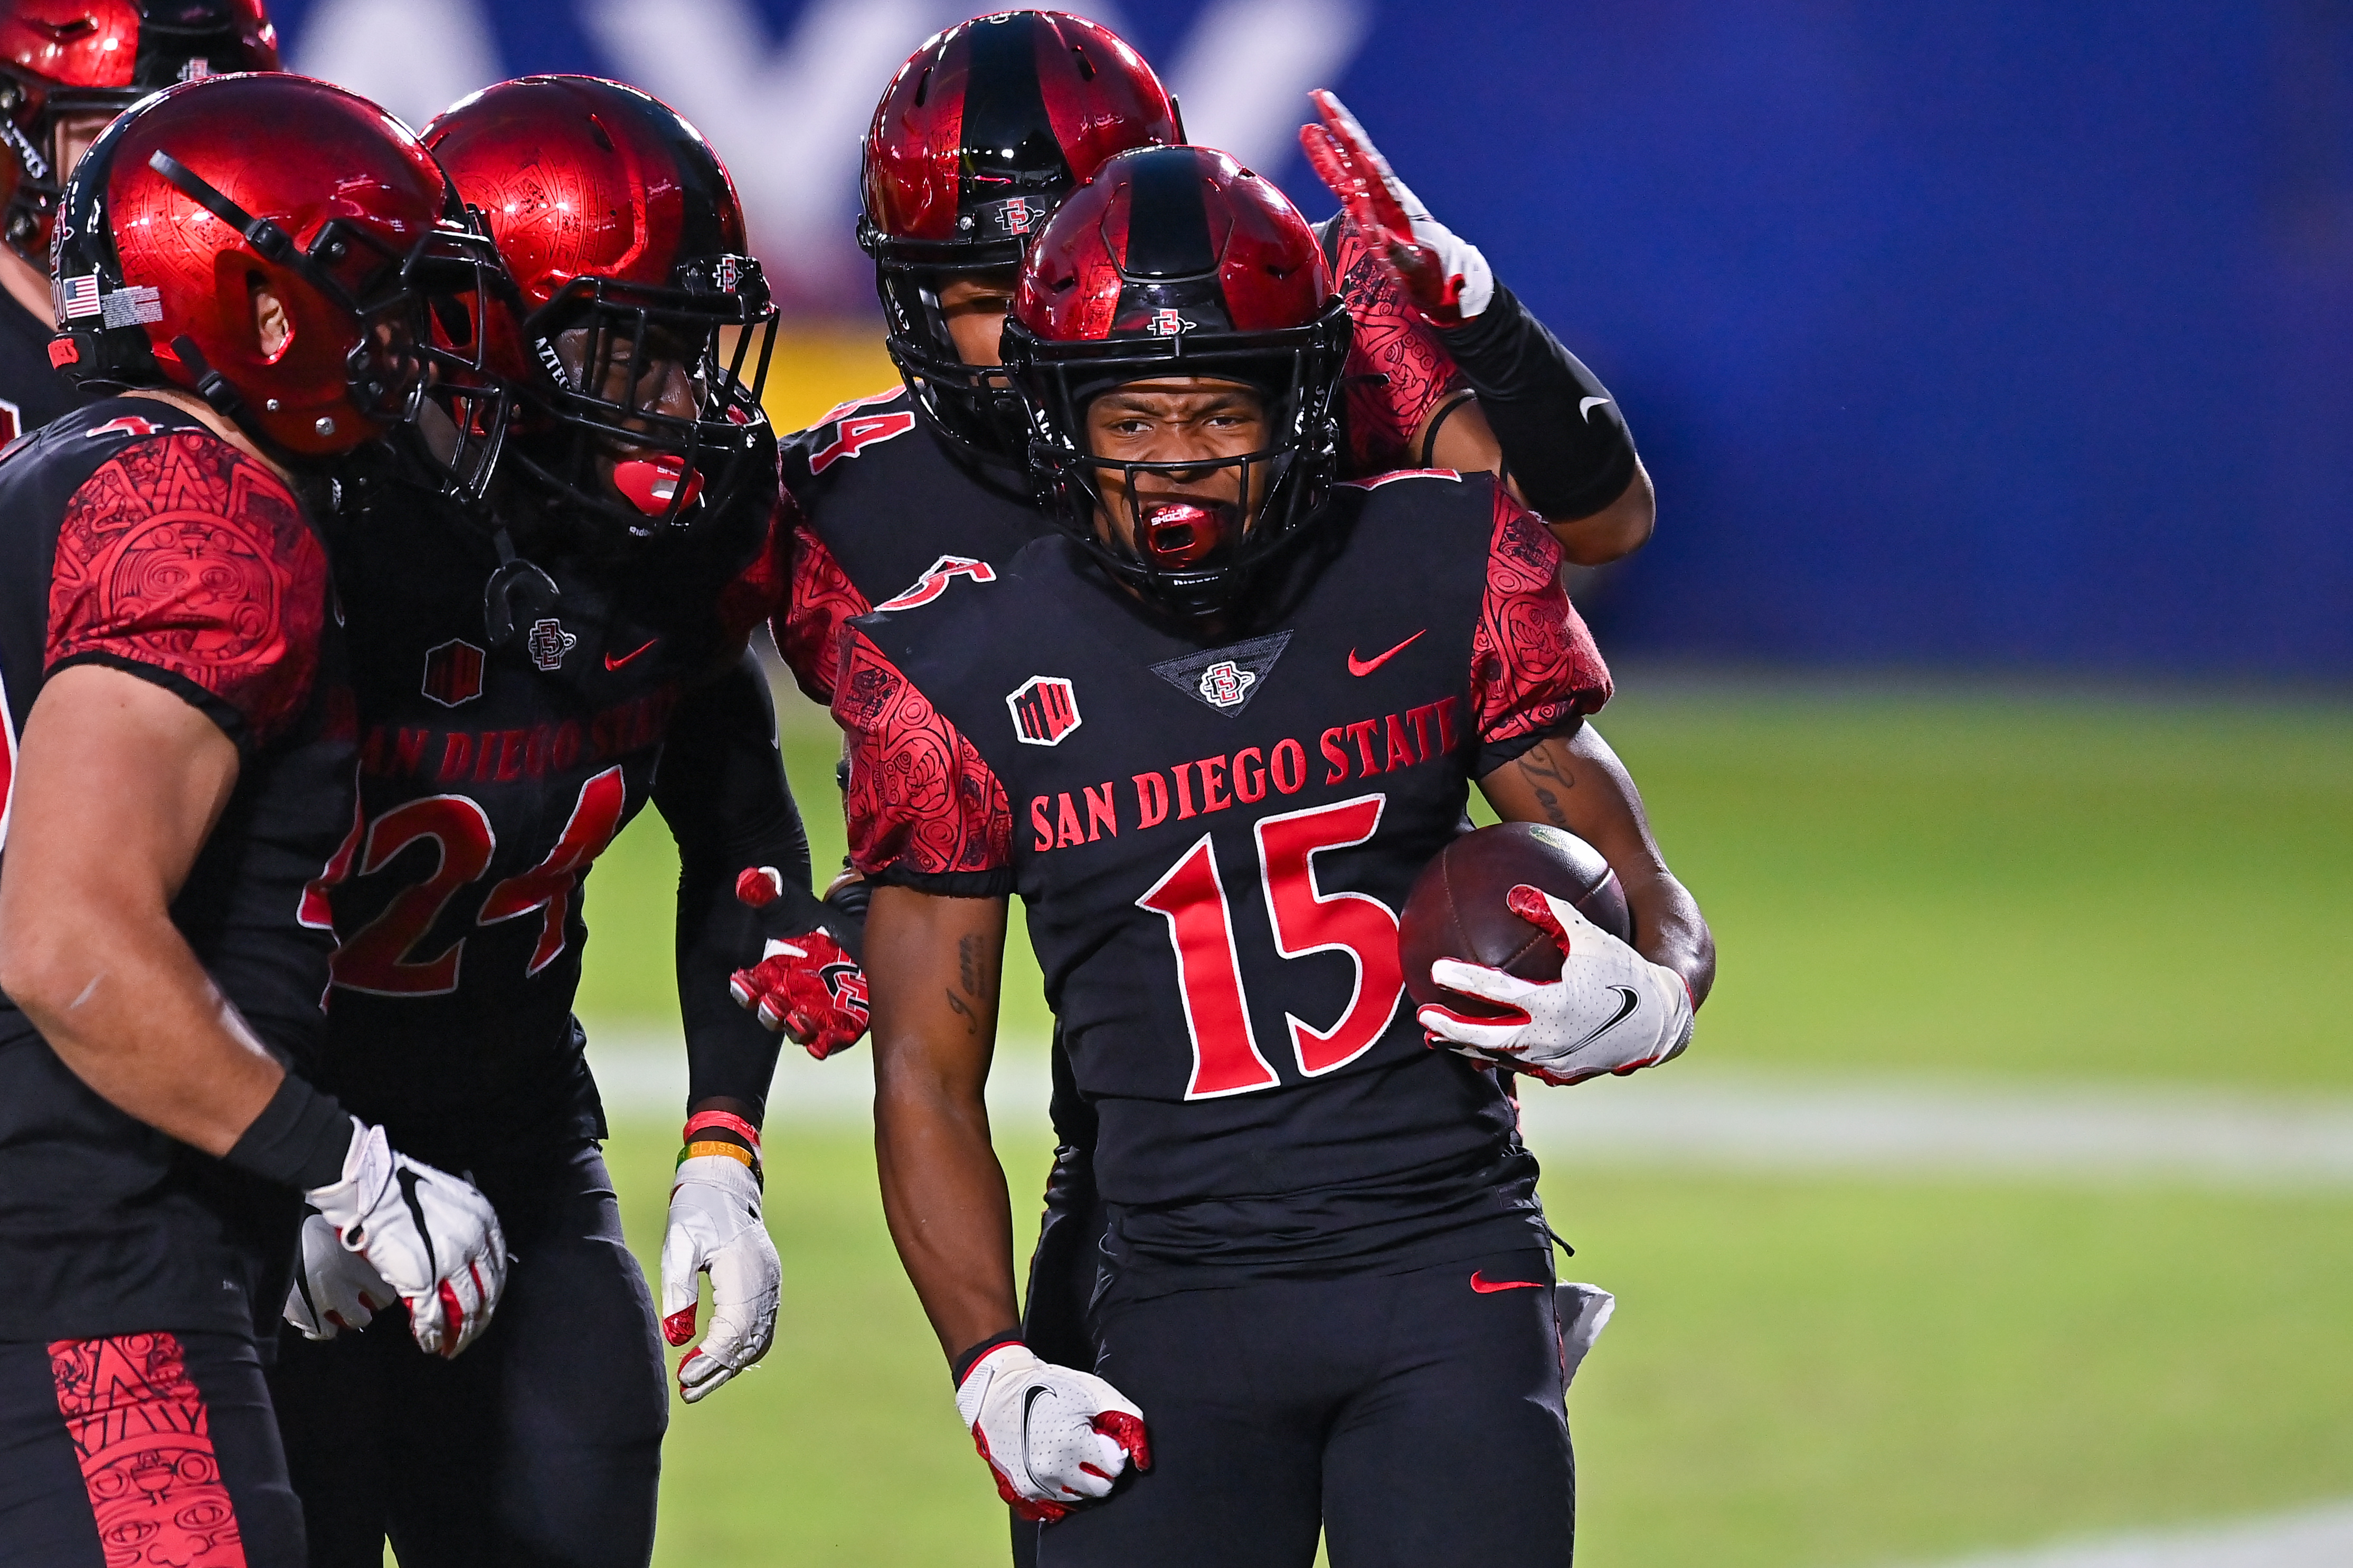 COLLEGE FOOTBALL: DEC 05 Colorado State at San Diego State